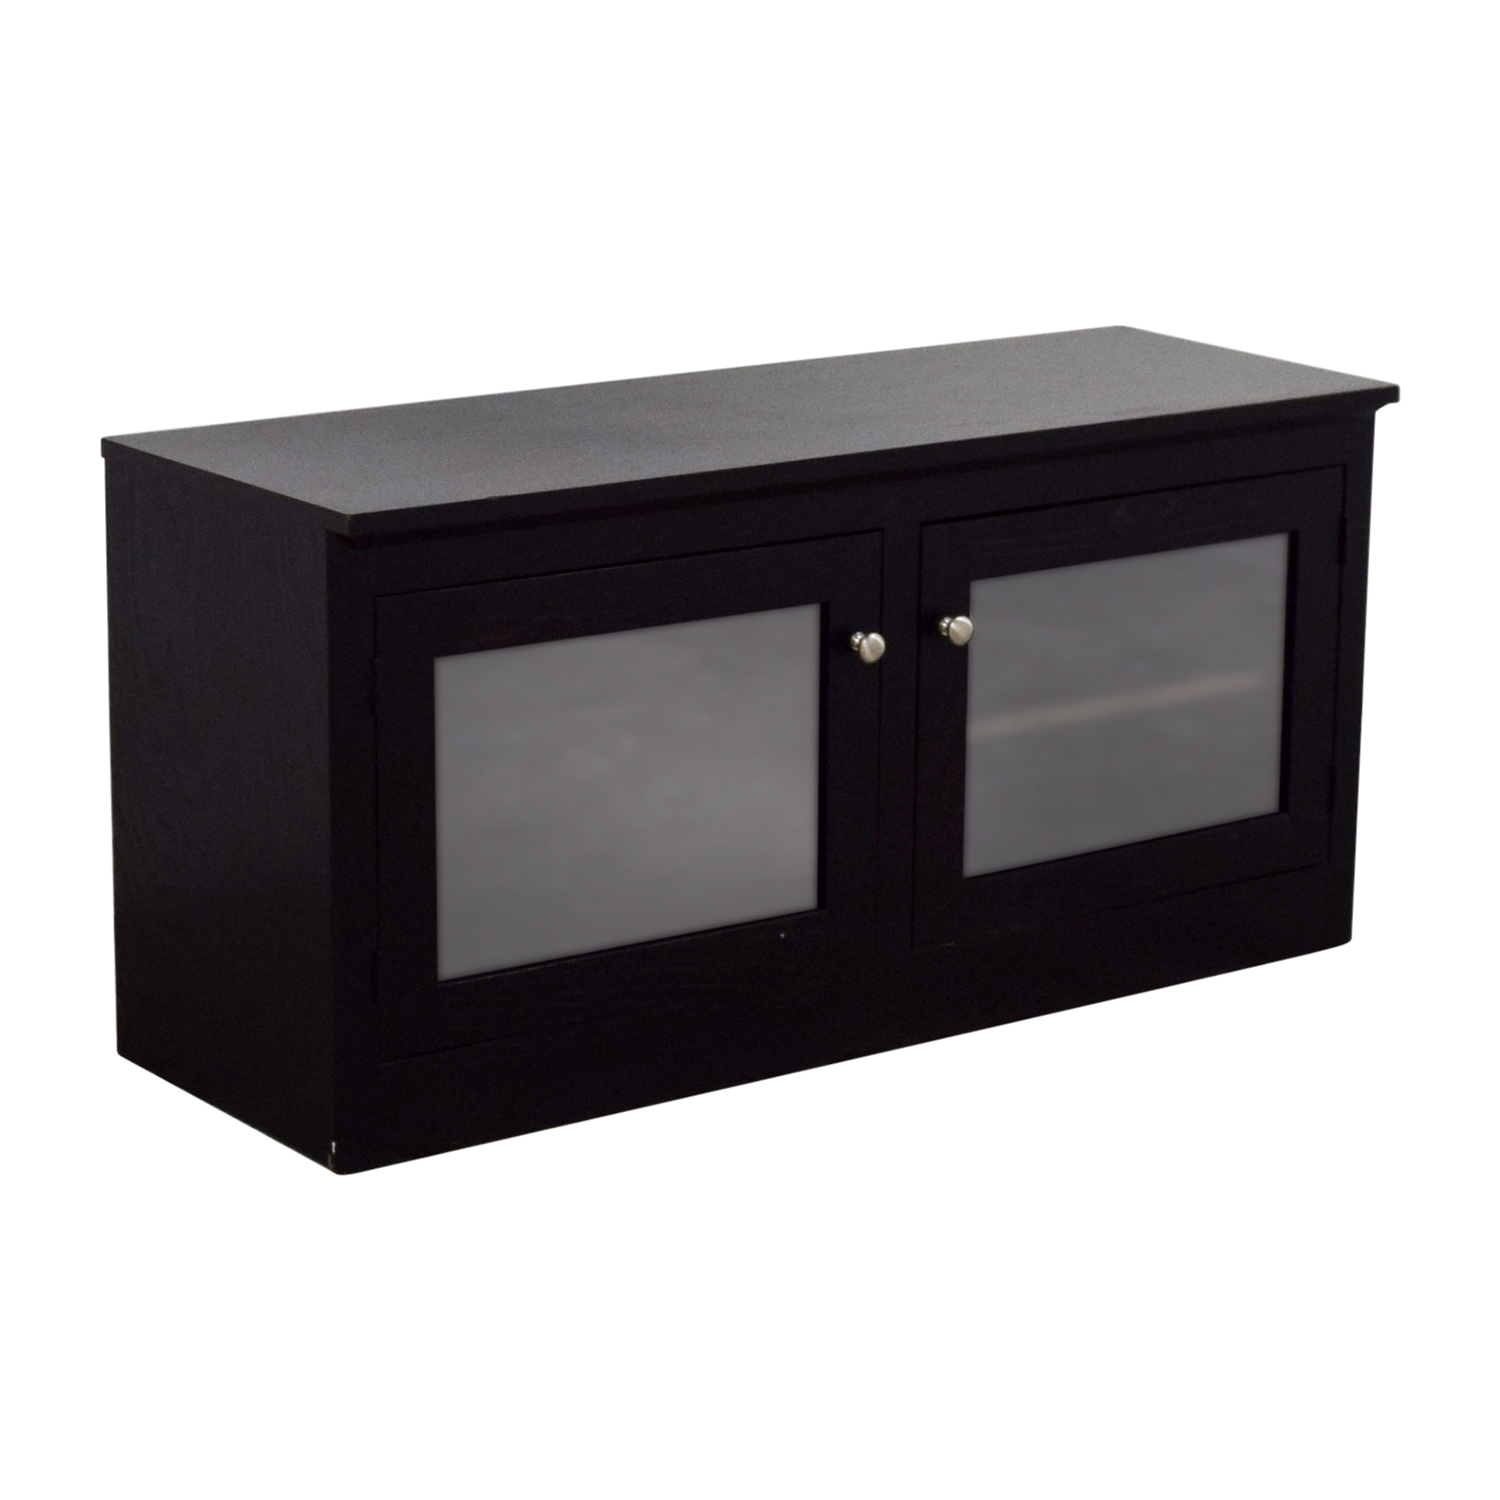 Crate & Barrel Crate & Barrel Glass and Wood TV Media Console Storage